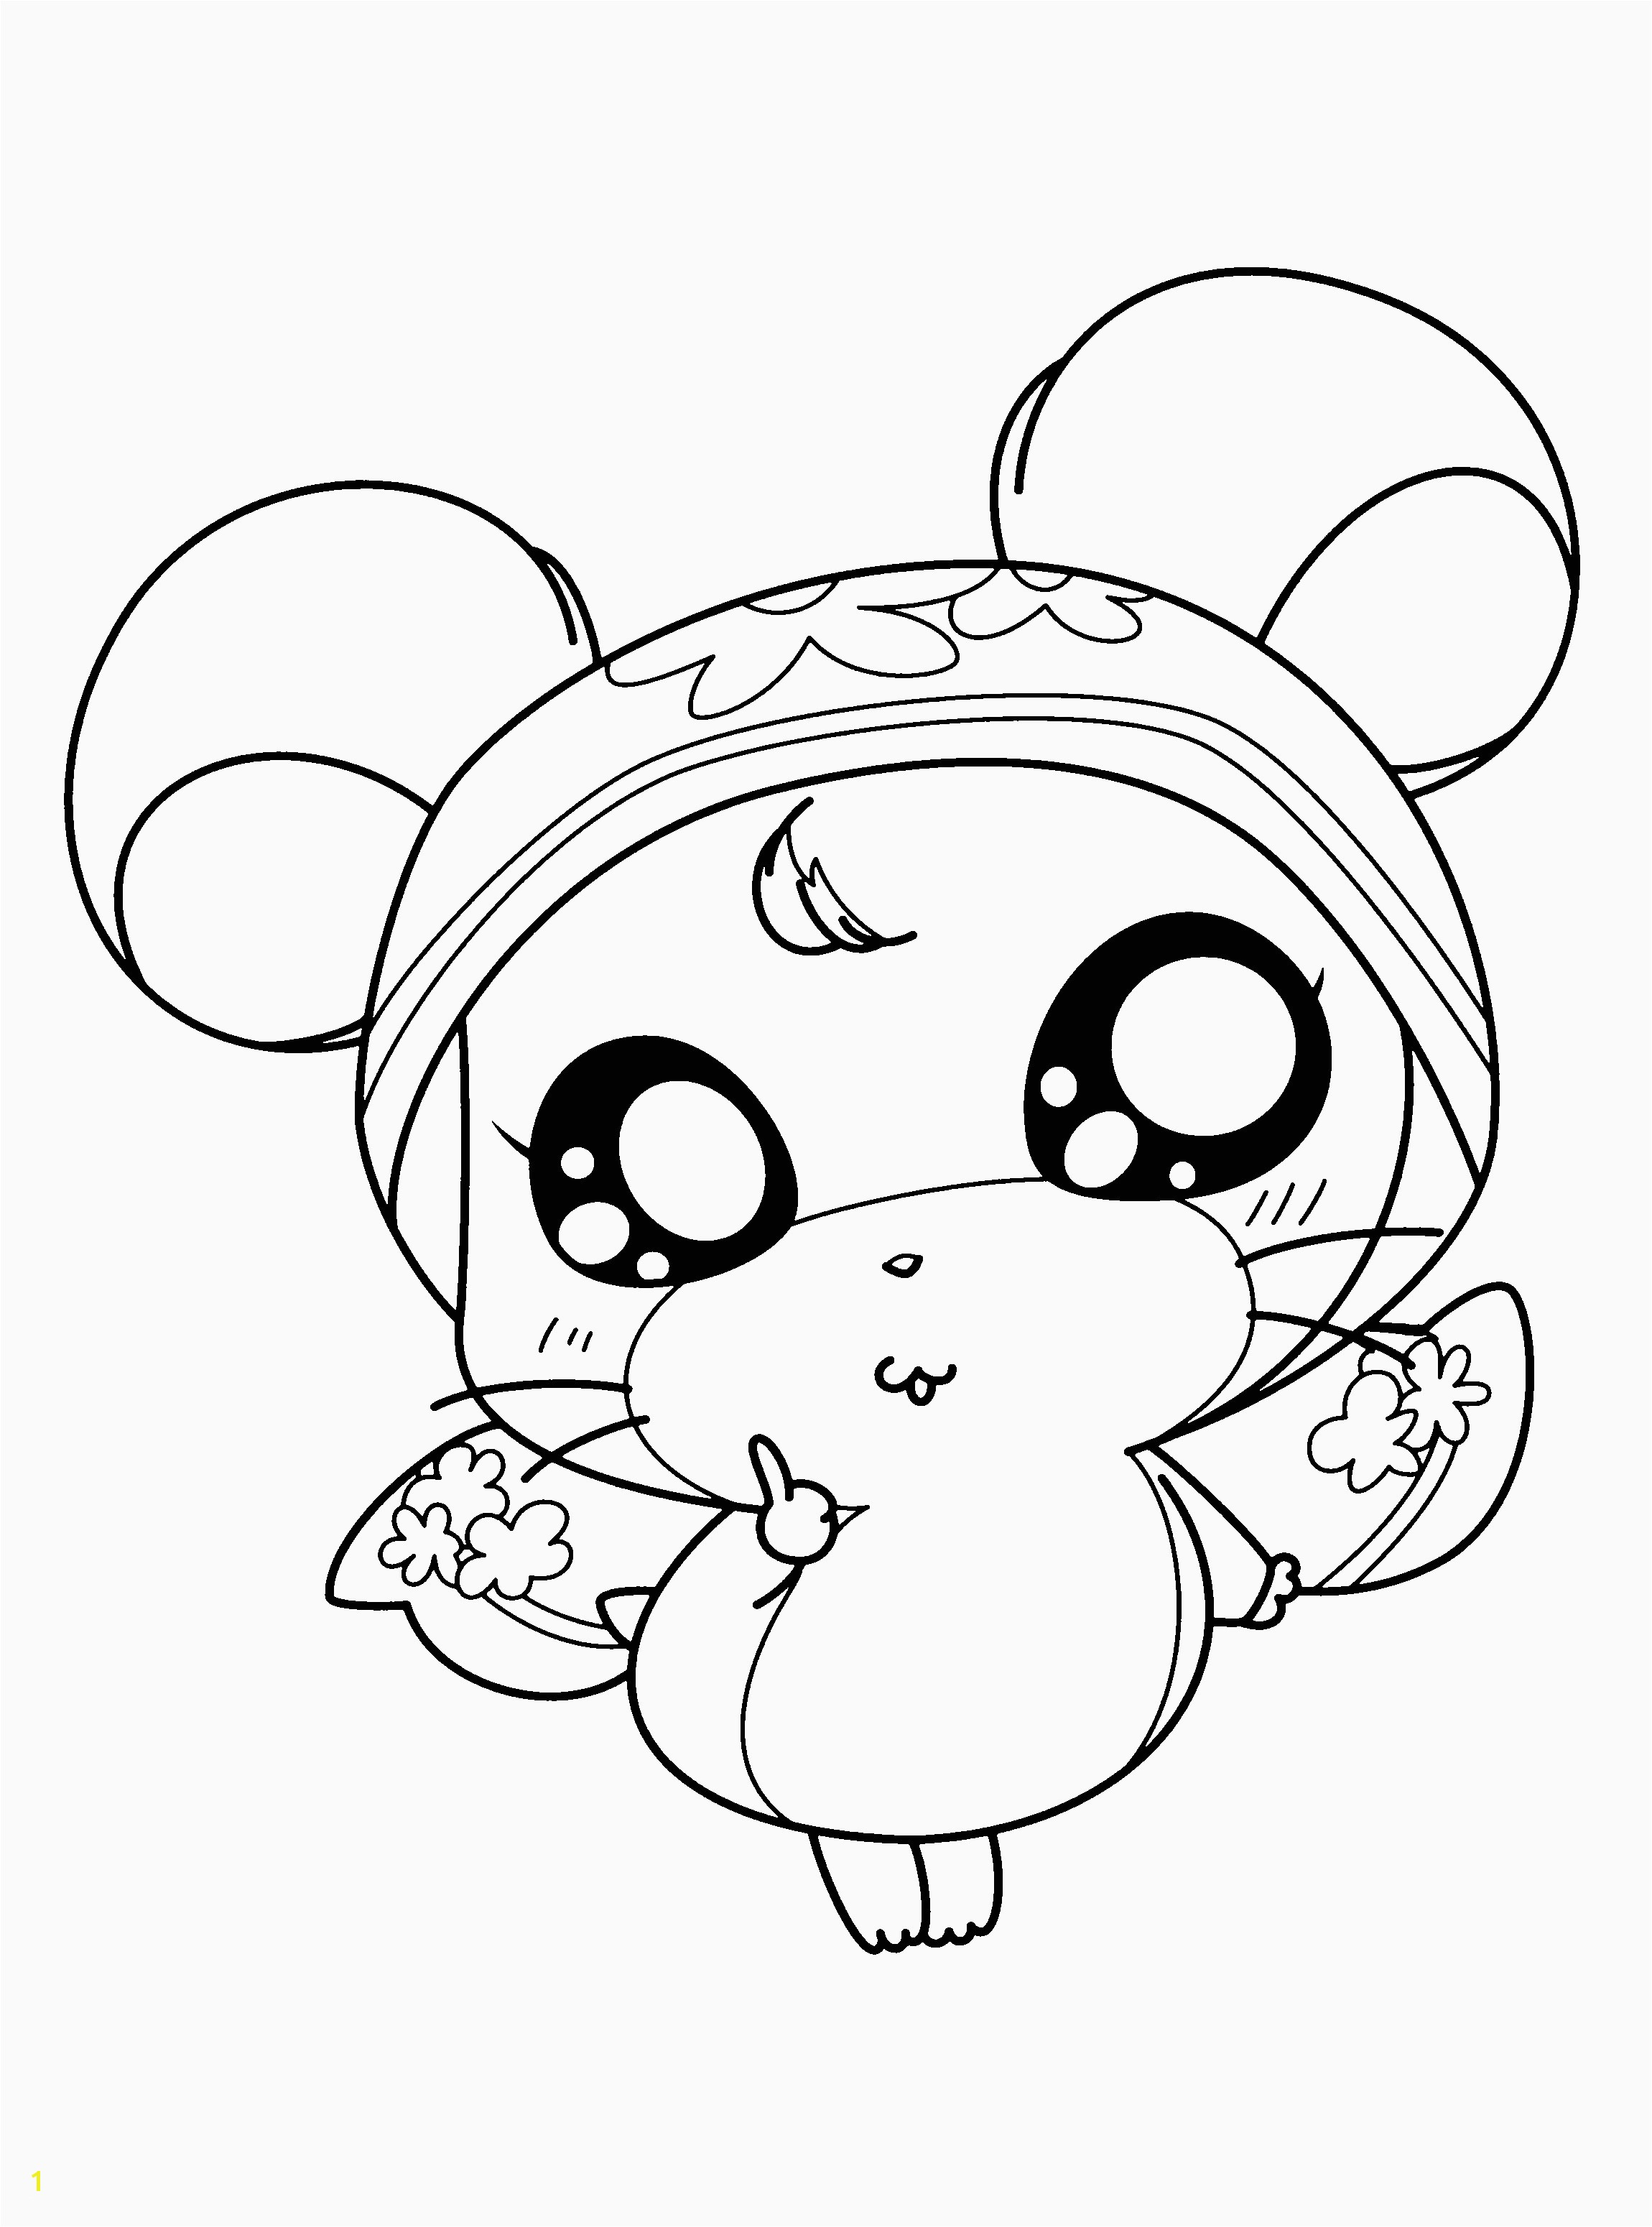 Pokemon Coloring Pages For Kids Elegant Pokemon Coloring Pages Printable Fresh Coloring Printables 0d – Fun